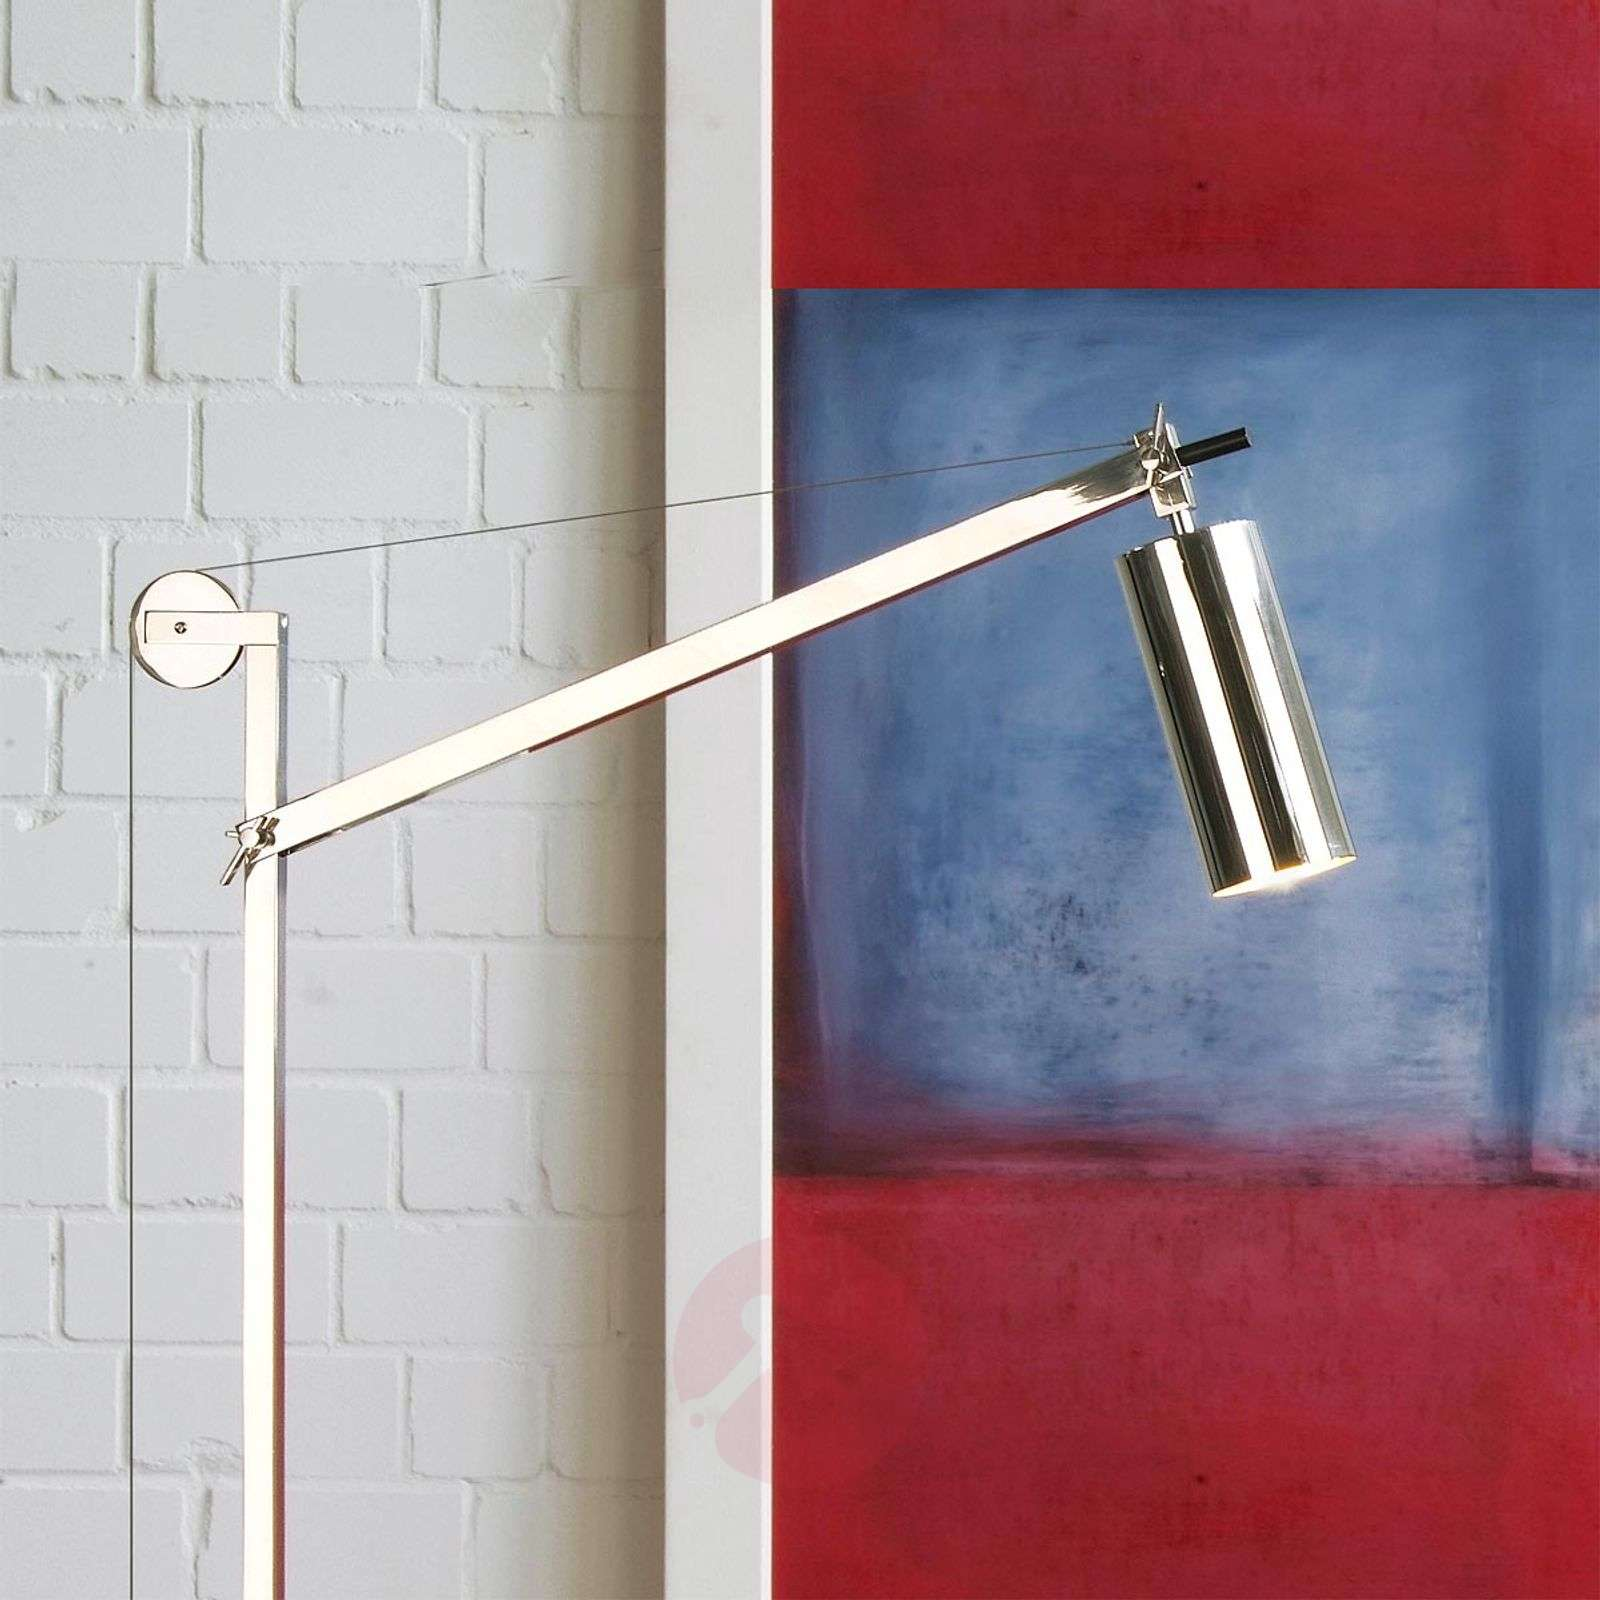 Tecnolumen Umkreis floor lamp in the Bauhaus style-9030016-01